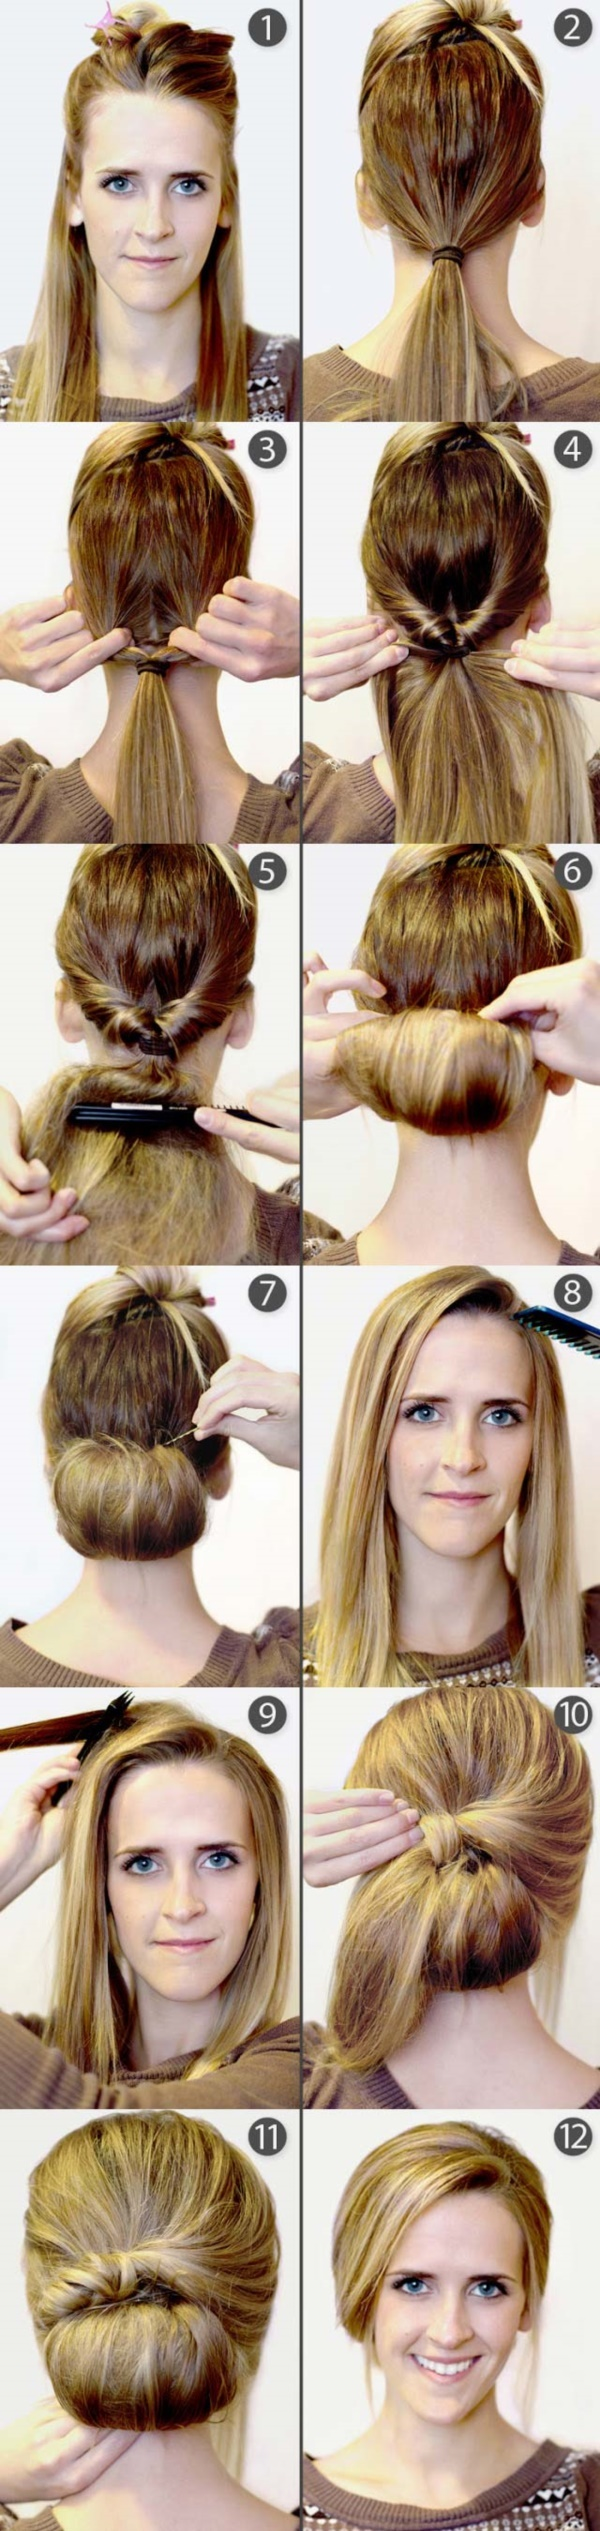 Miraculous 101 Easy Diy Hairstyles For Medium And Long Hair To Snatch Attention Hairstyles For Women Draintrainus